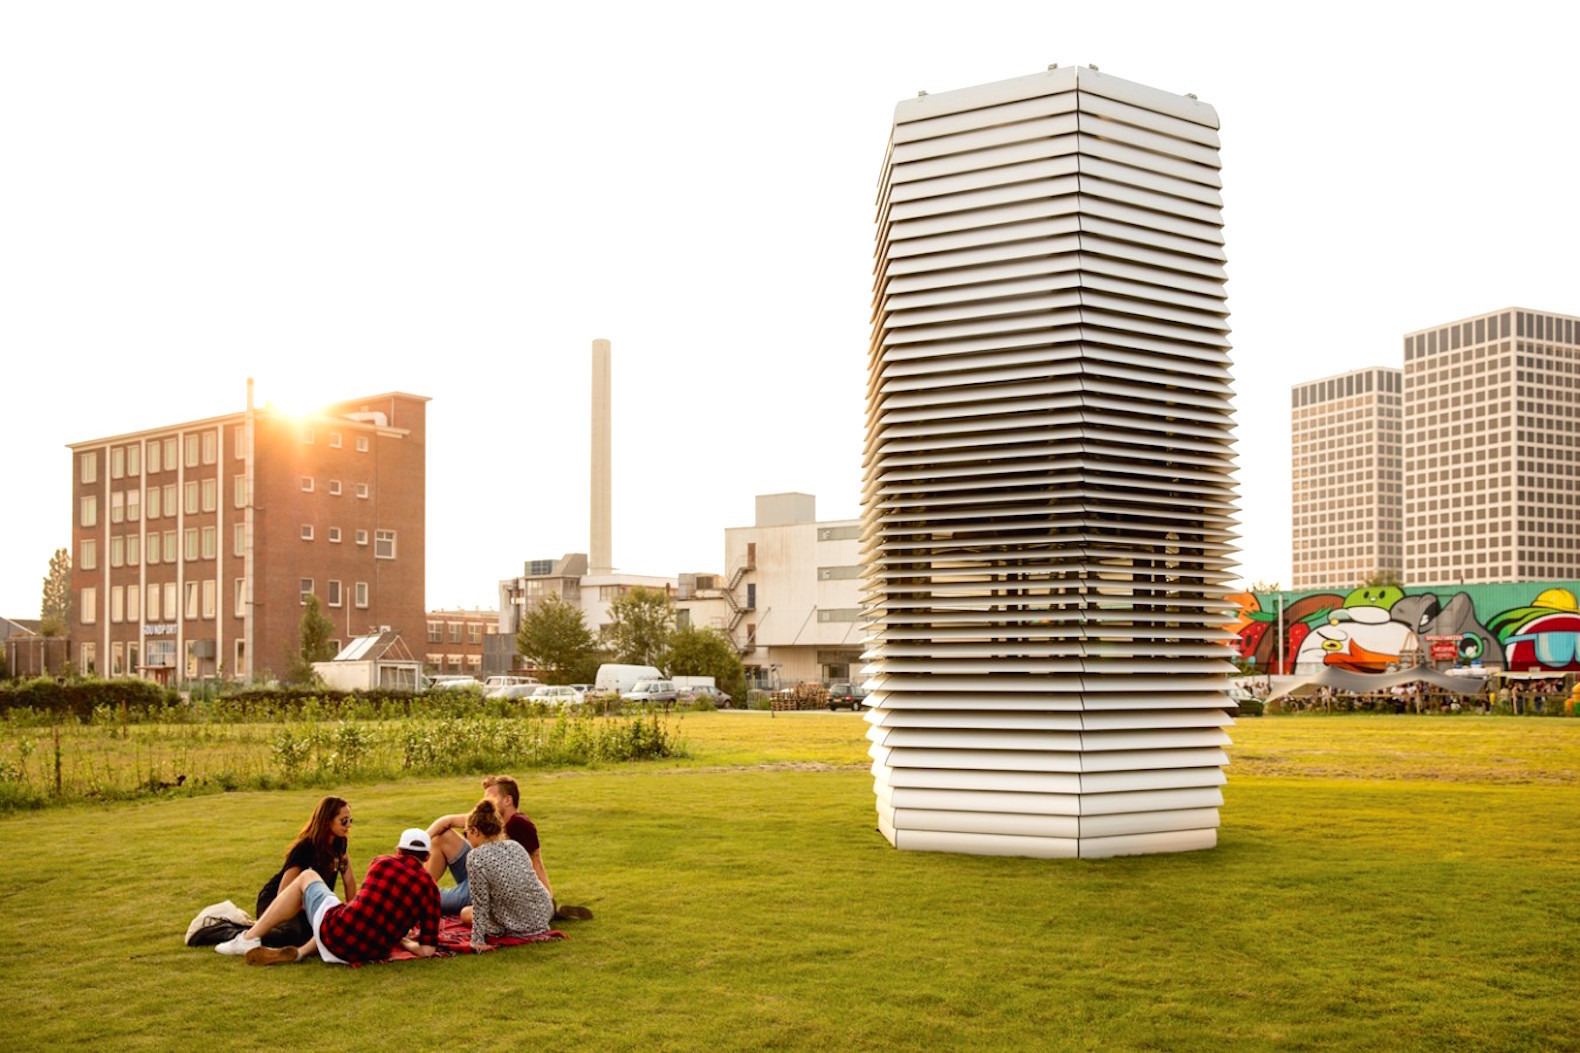 6 Brilliant Smog Eating Designs Ridding Cities Of Air